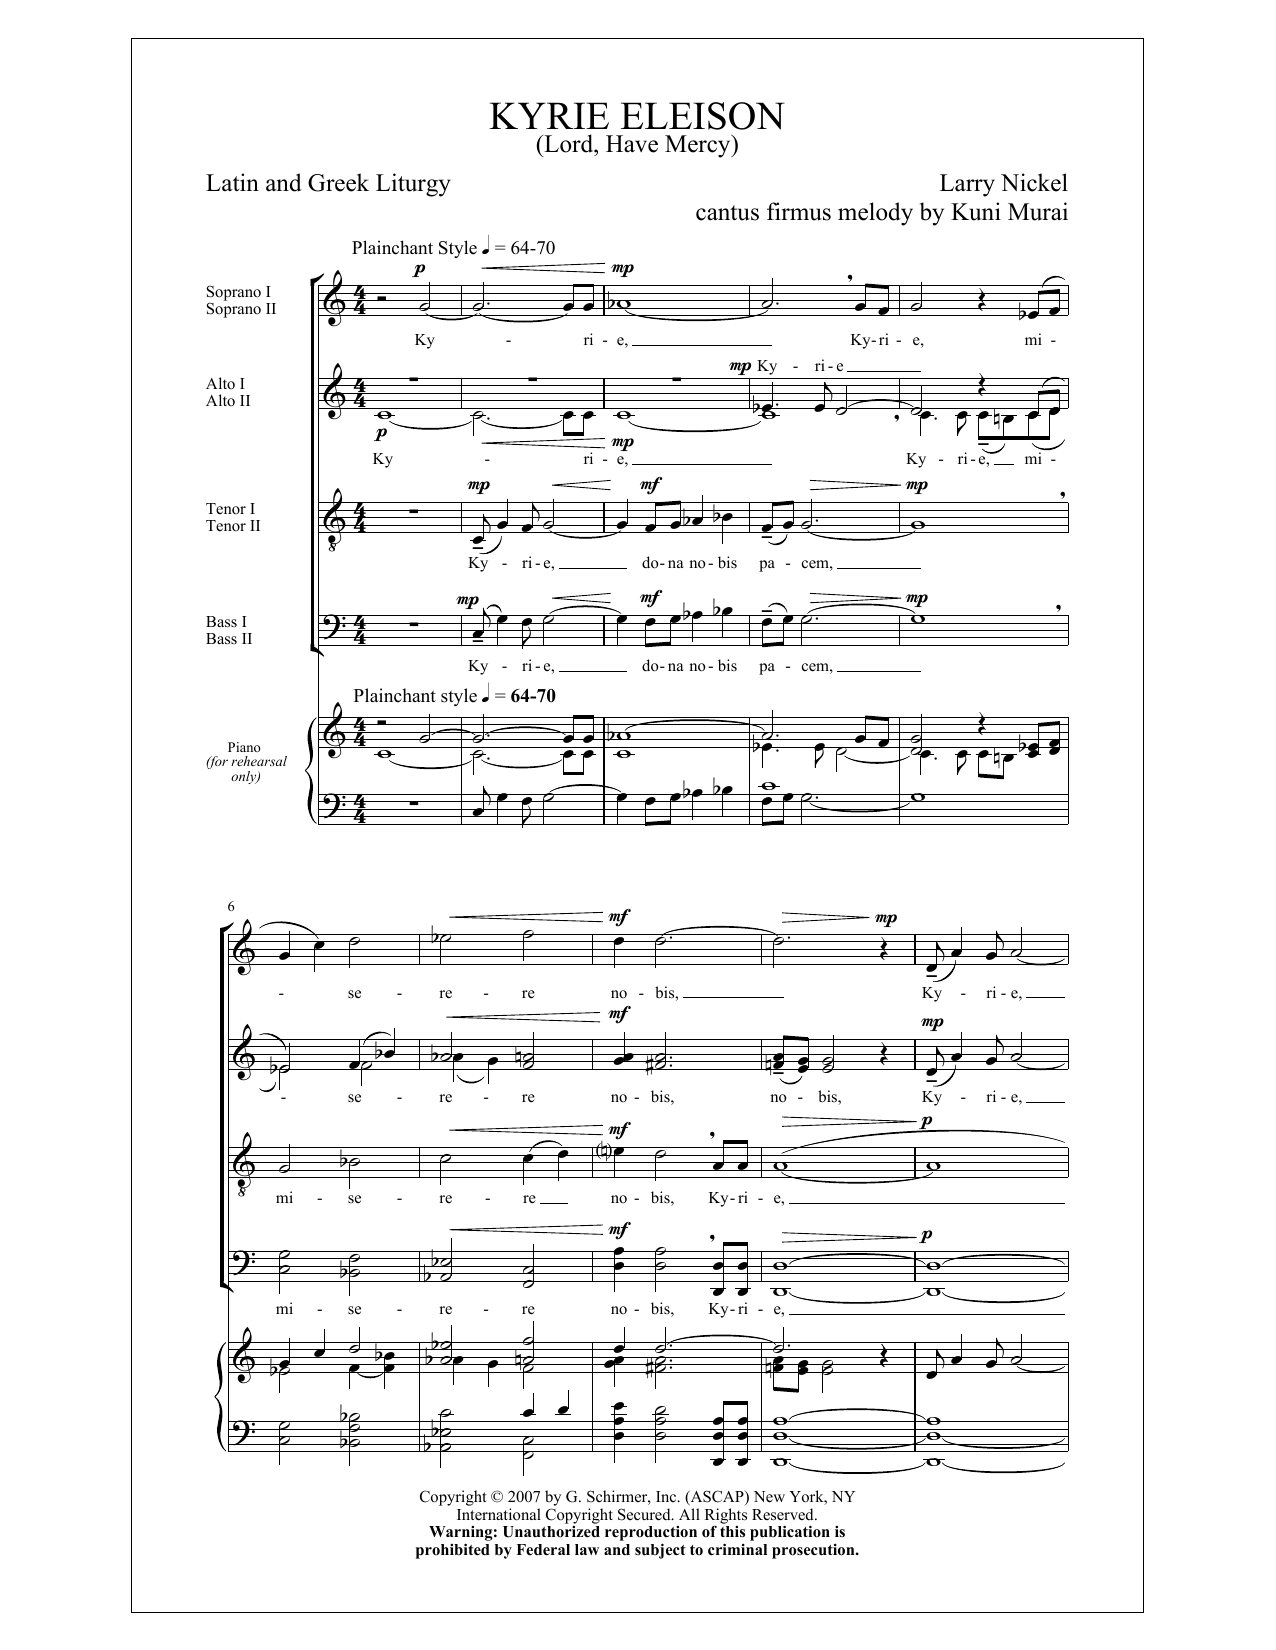 Vocal Scores - Choral 'Print-on-Demand' Kyrie Eleison (Lord, Have